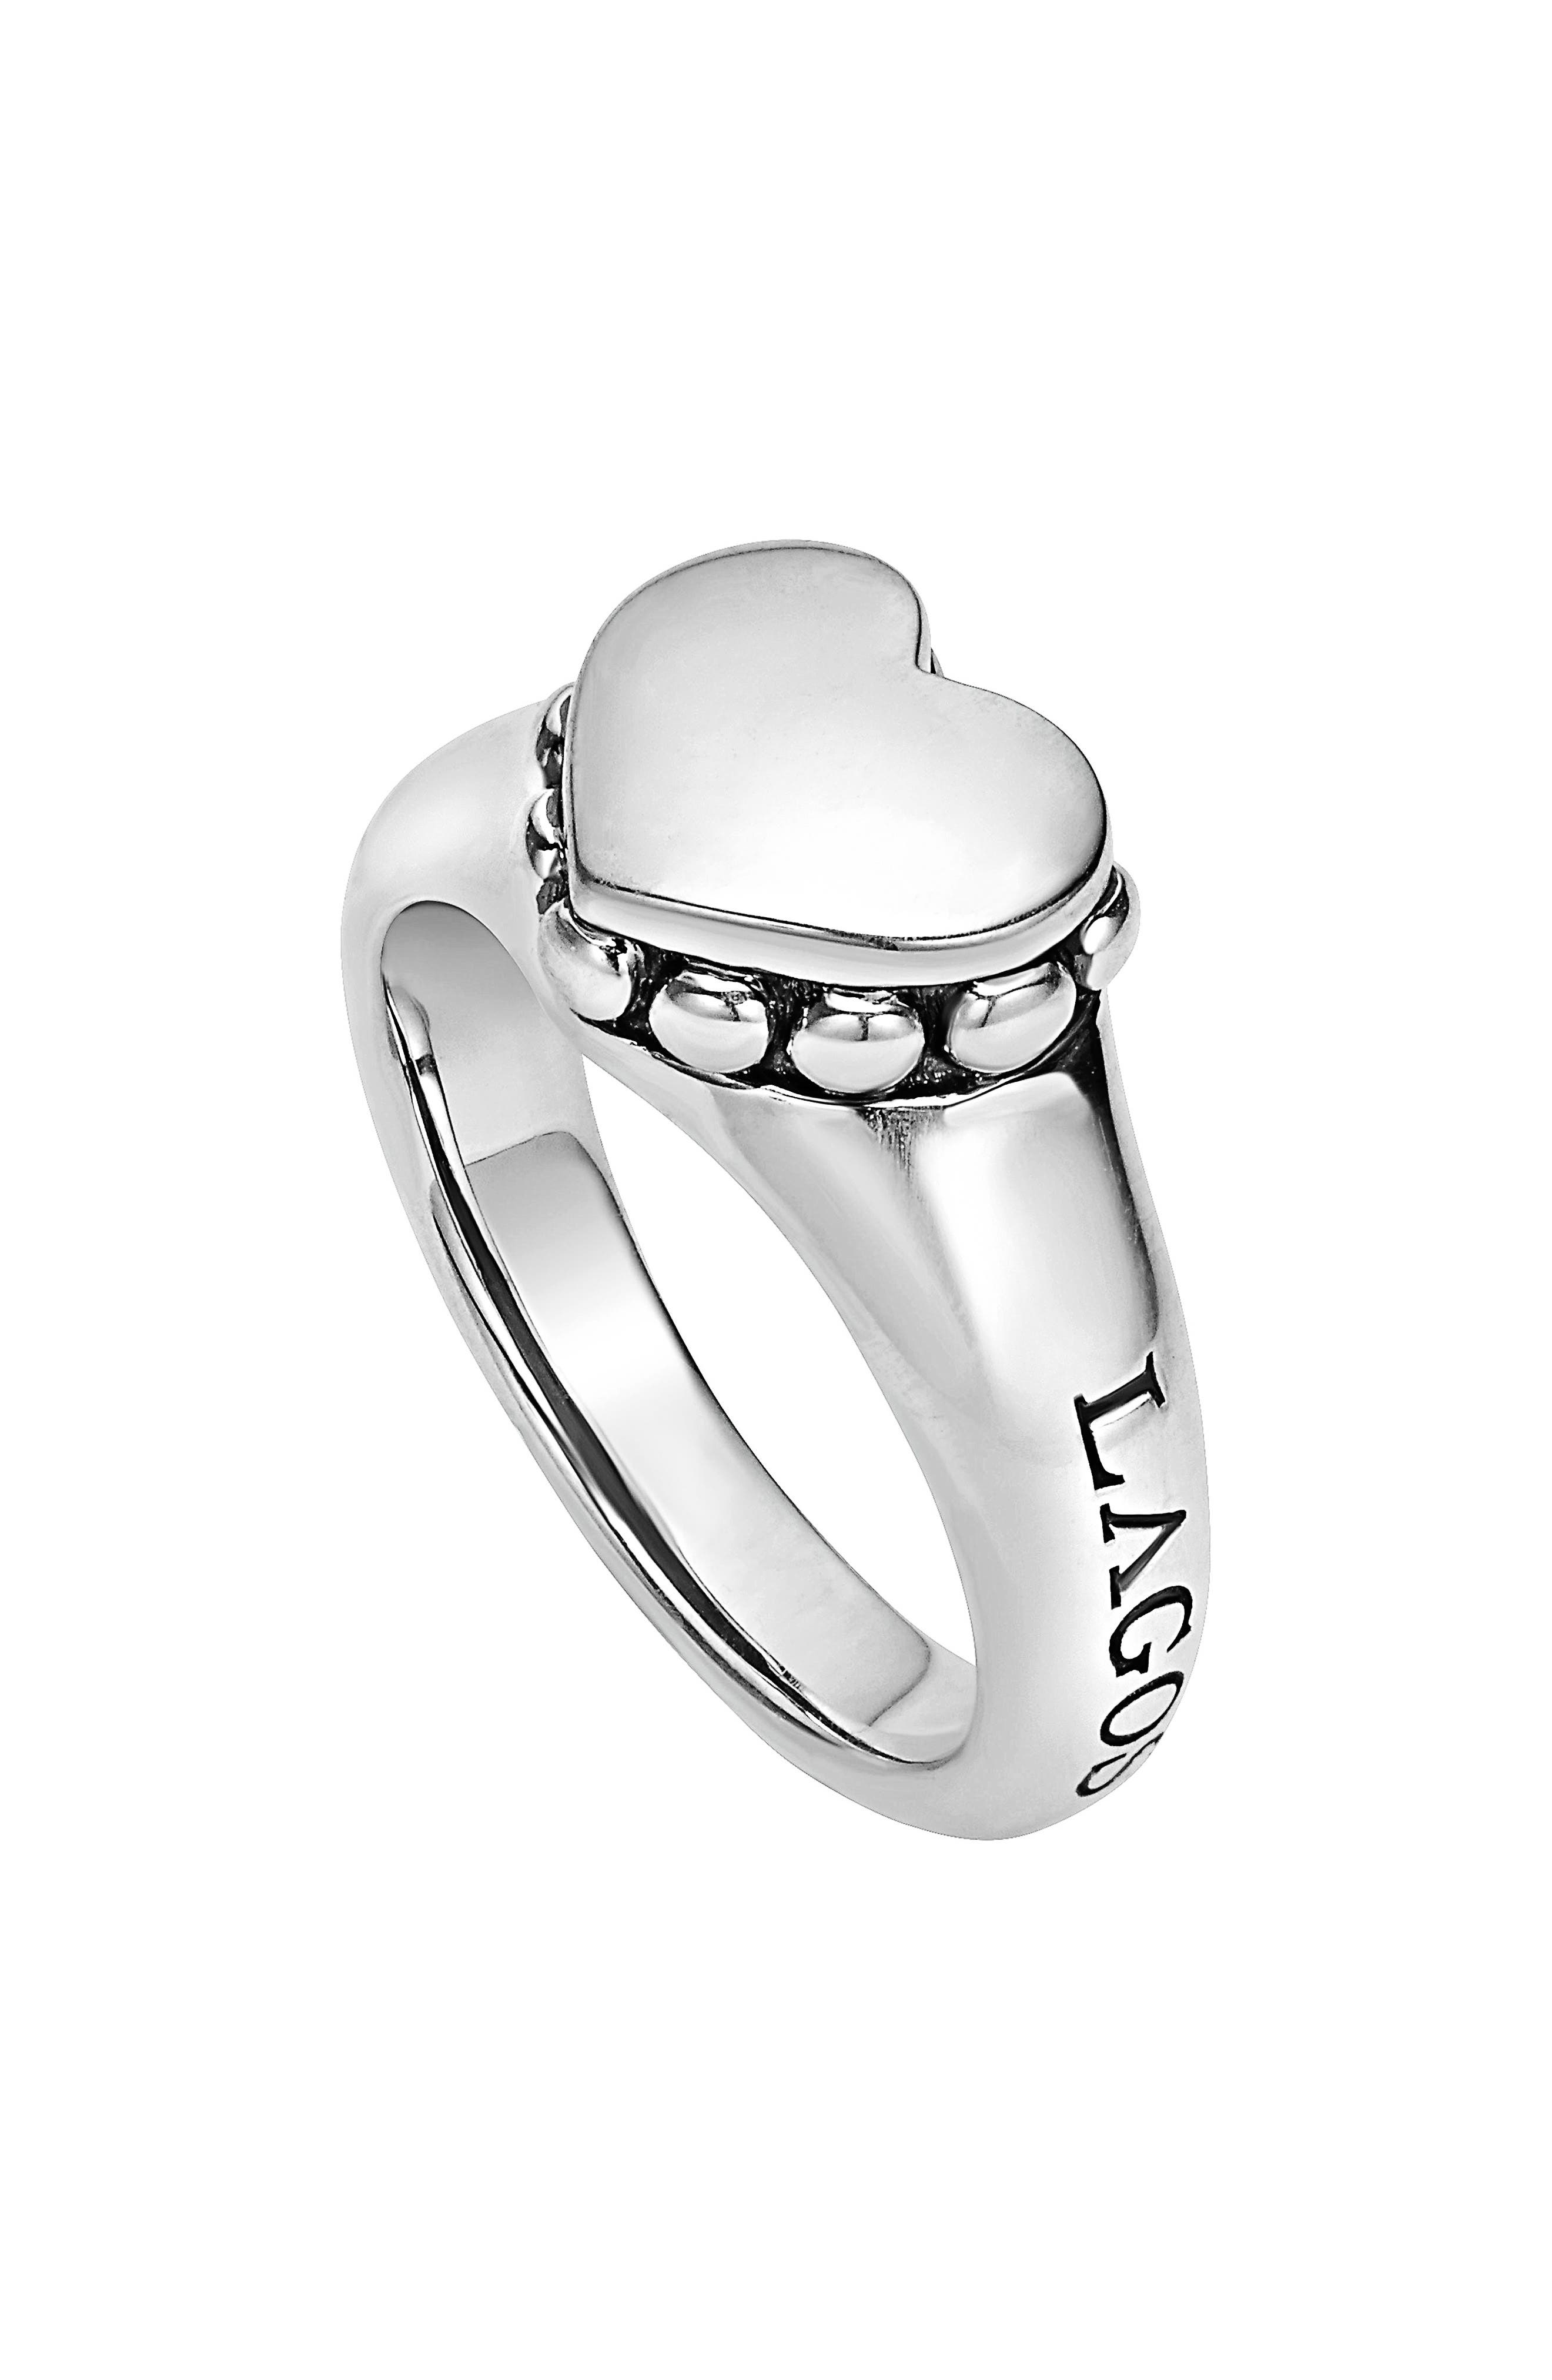 Alternate Image 1 Selected - LAGOS 'Beloved' Small Heart Ring